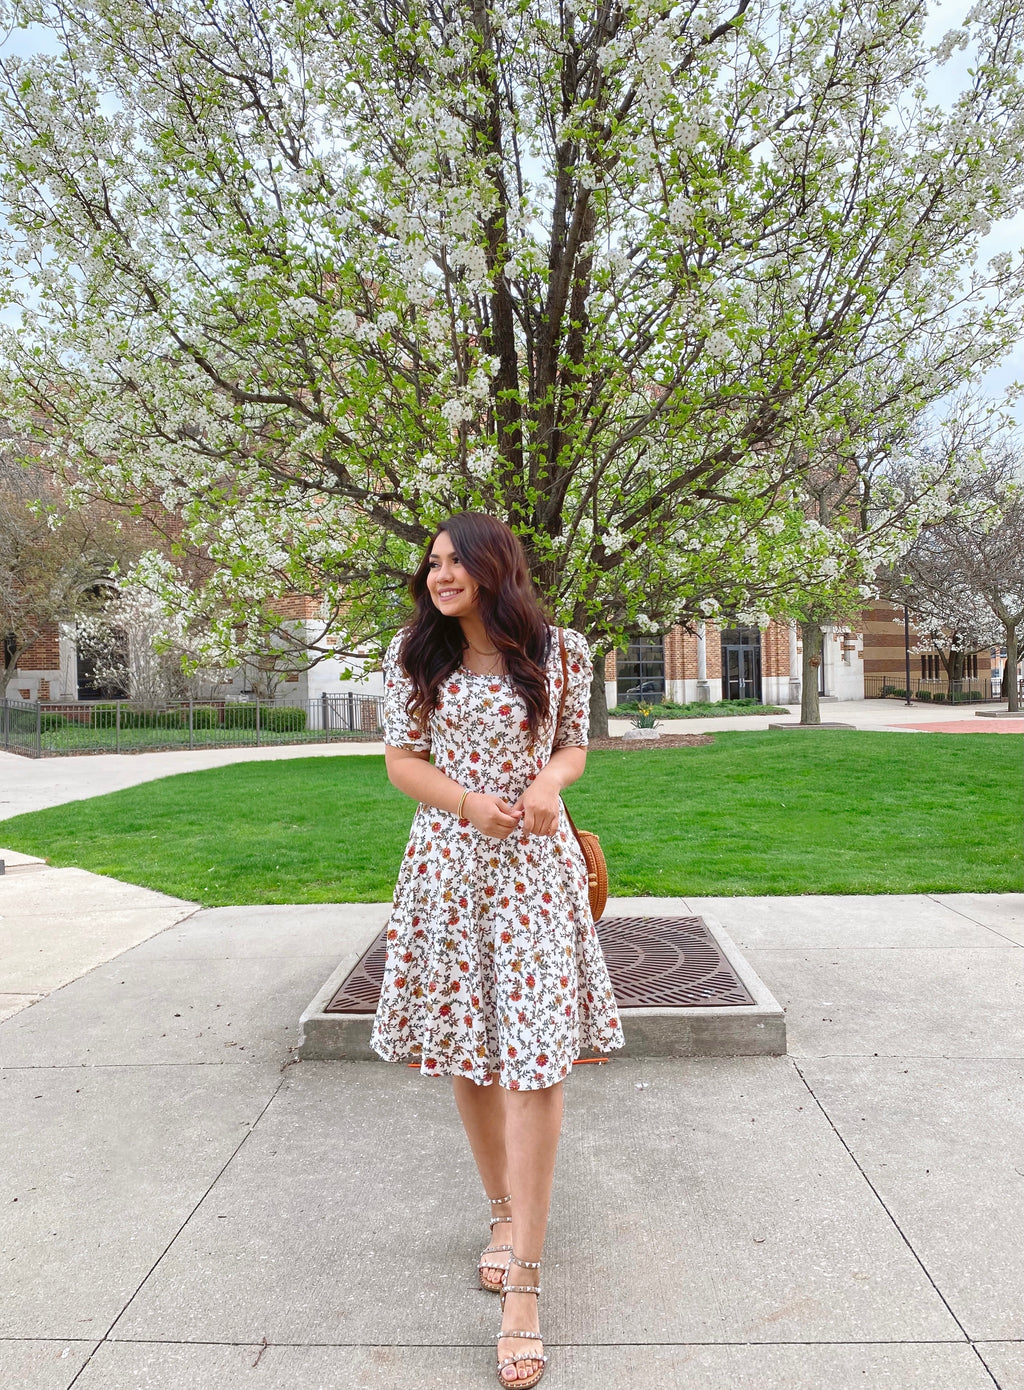 The Ivy Floral Dress